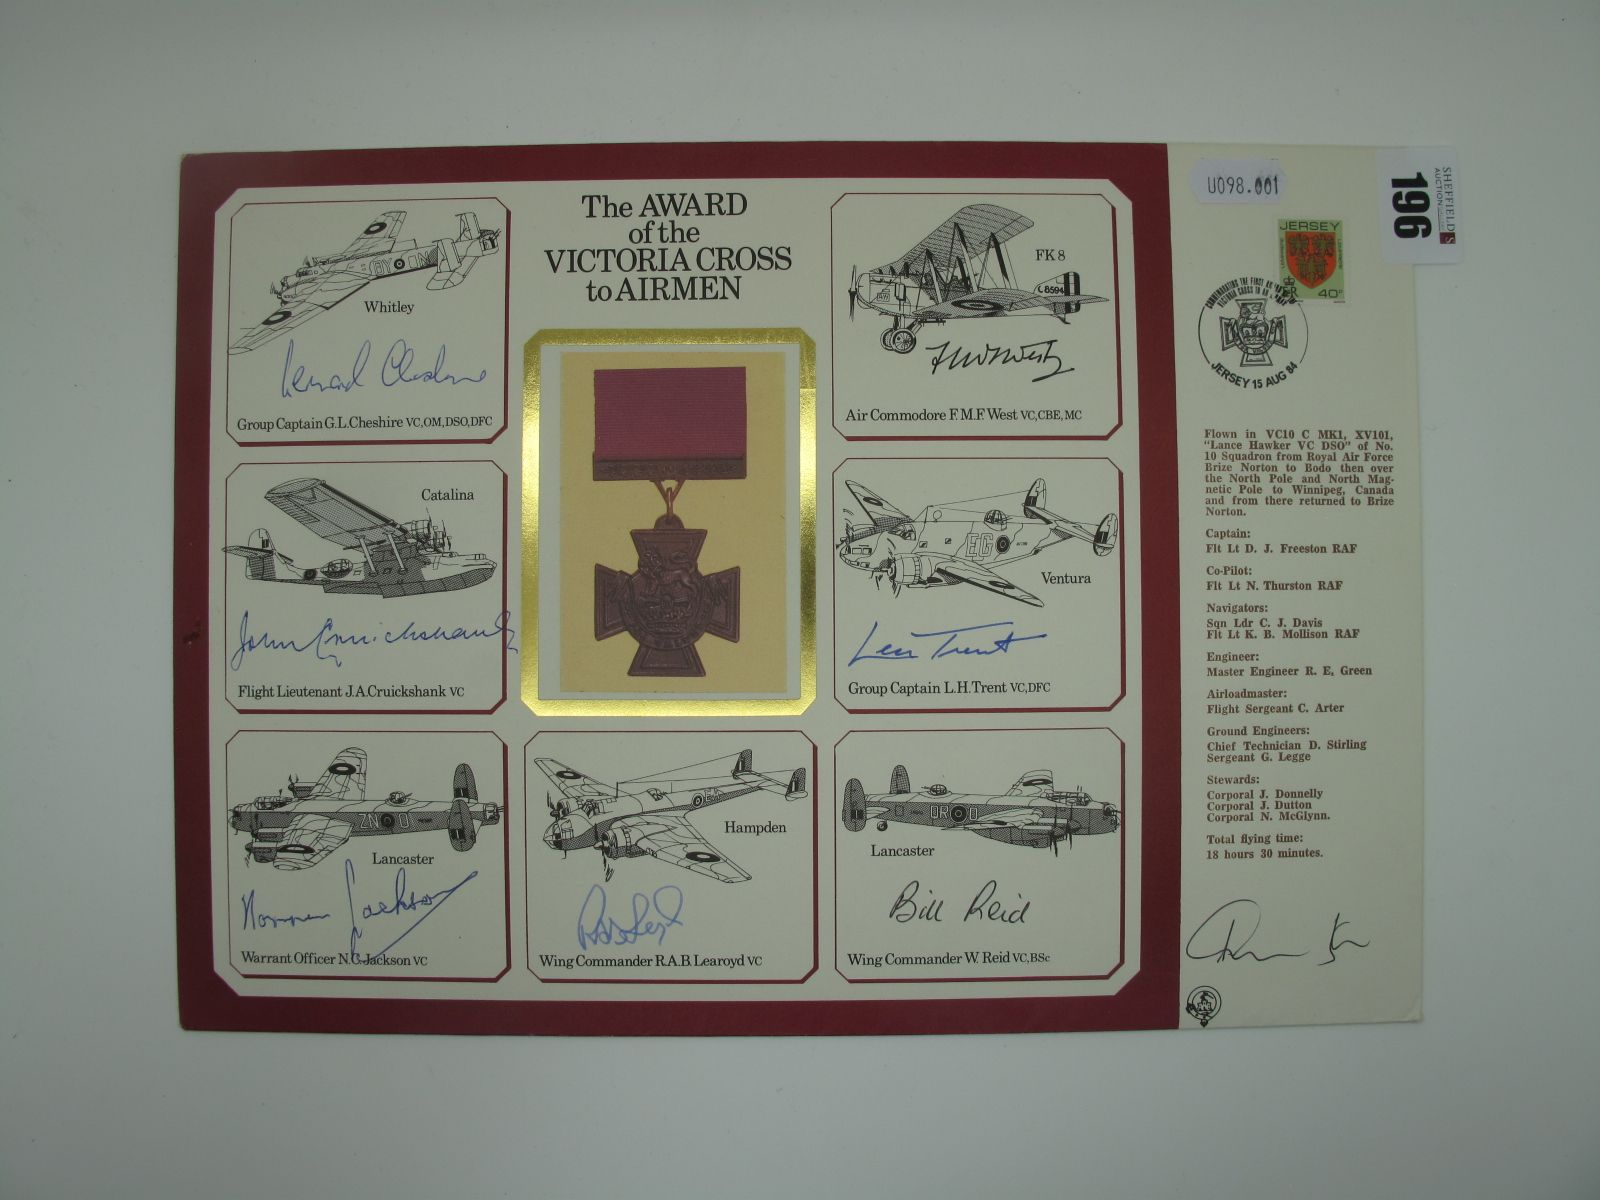 A 1980's Flown Cover Bearing the Signatures of Seven WWII Victoria Cross Winners, Group Captain